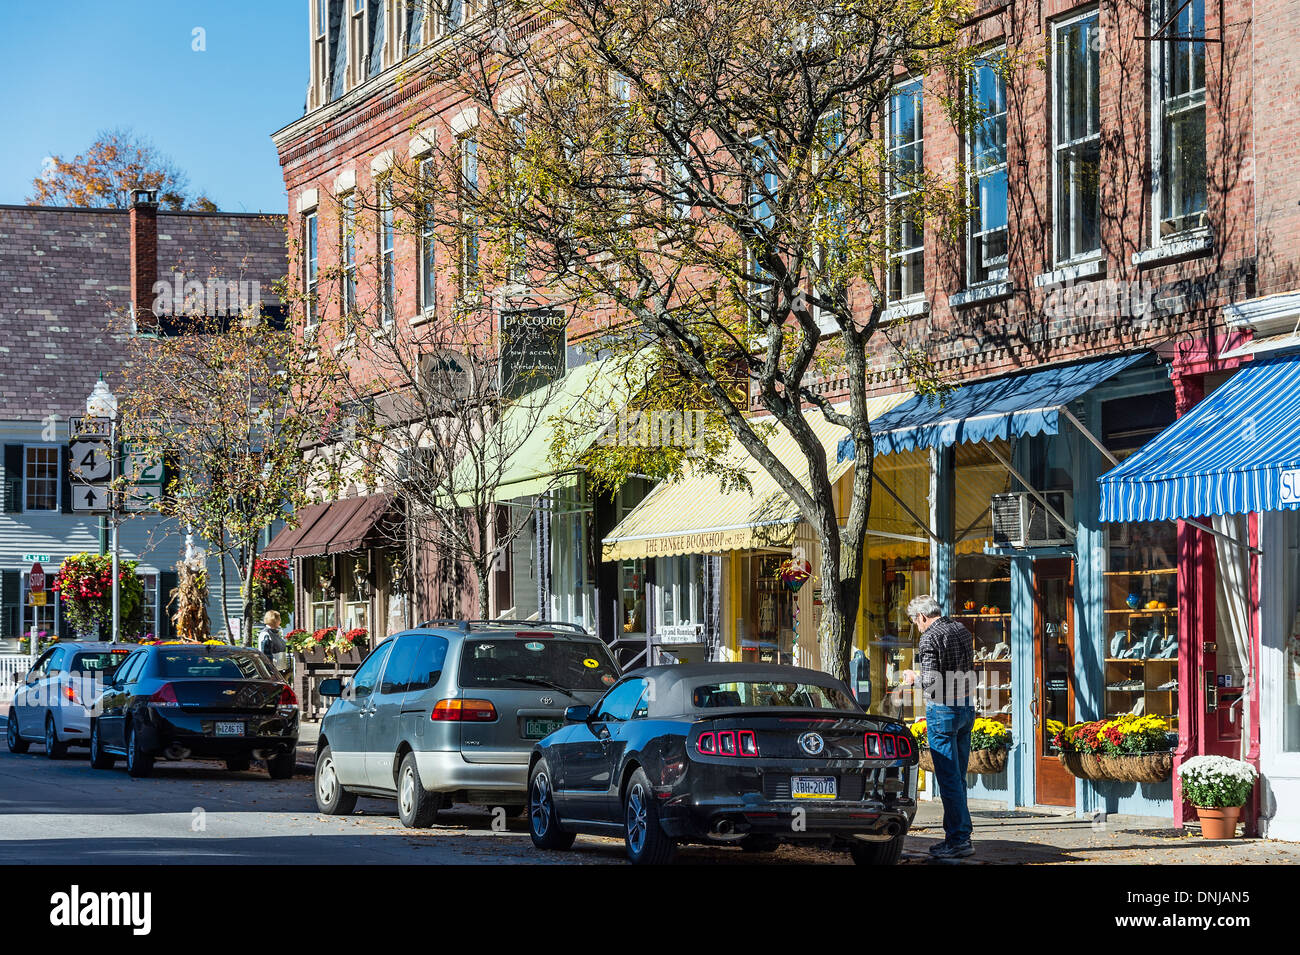 Charming Main Street shops in Woodstock Village, Vermont, USA - Stock Image